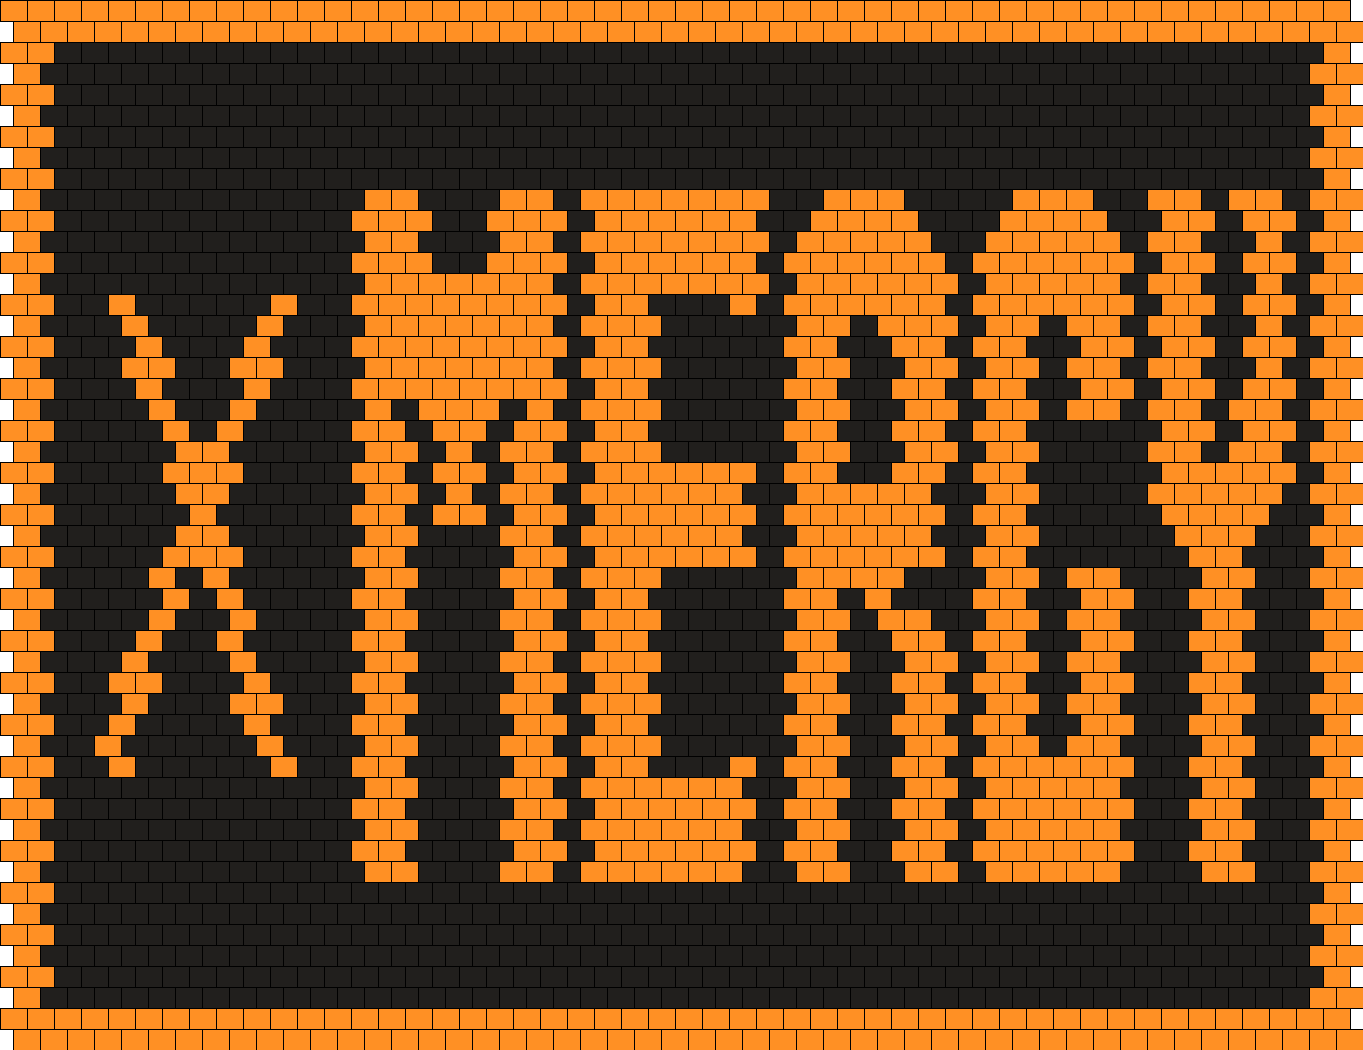 Undertale MERCY Button Bead Pattern